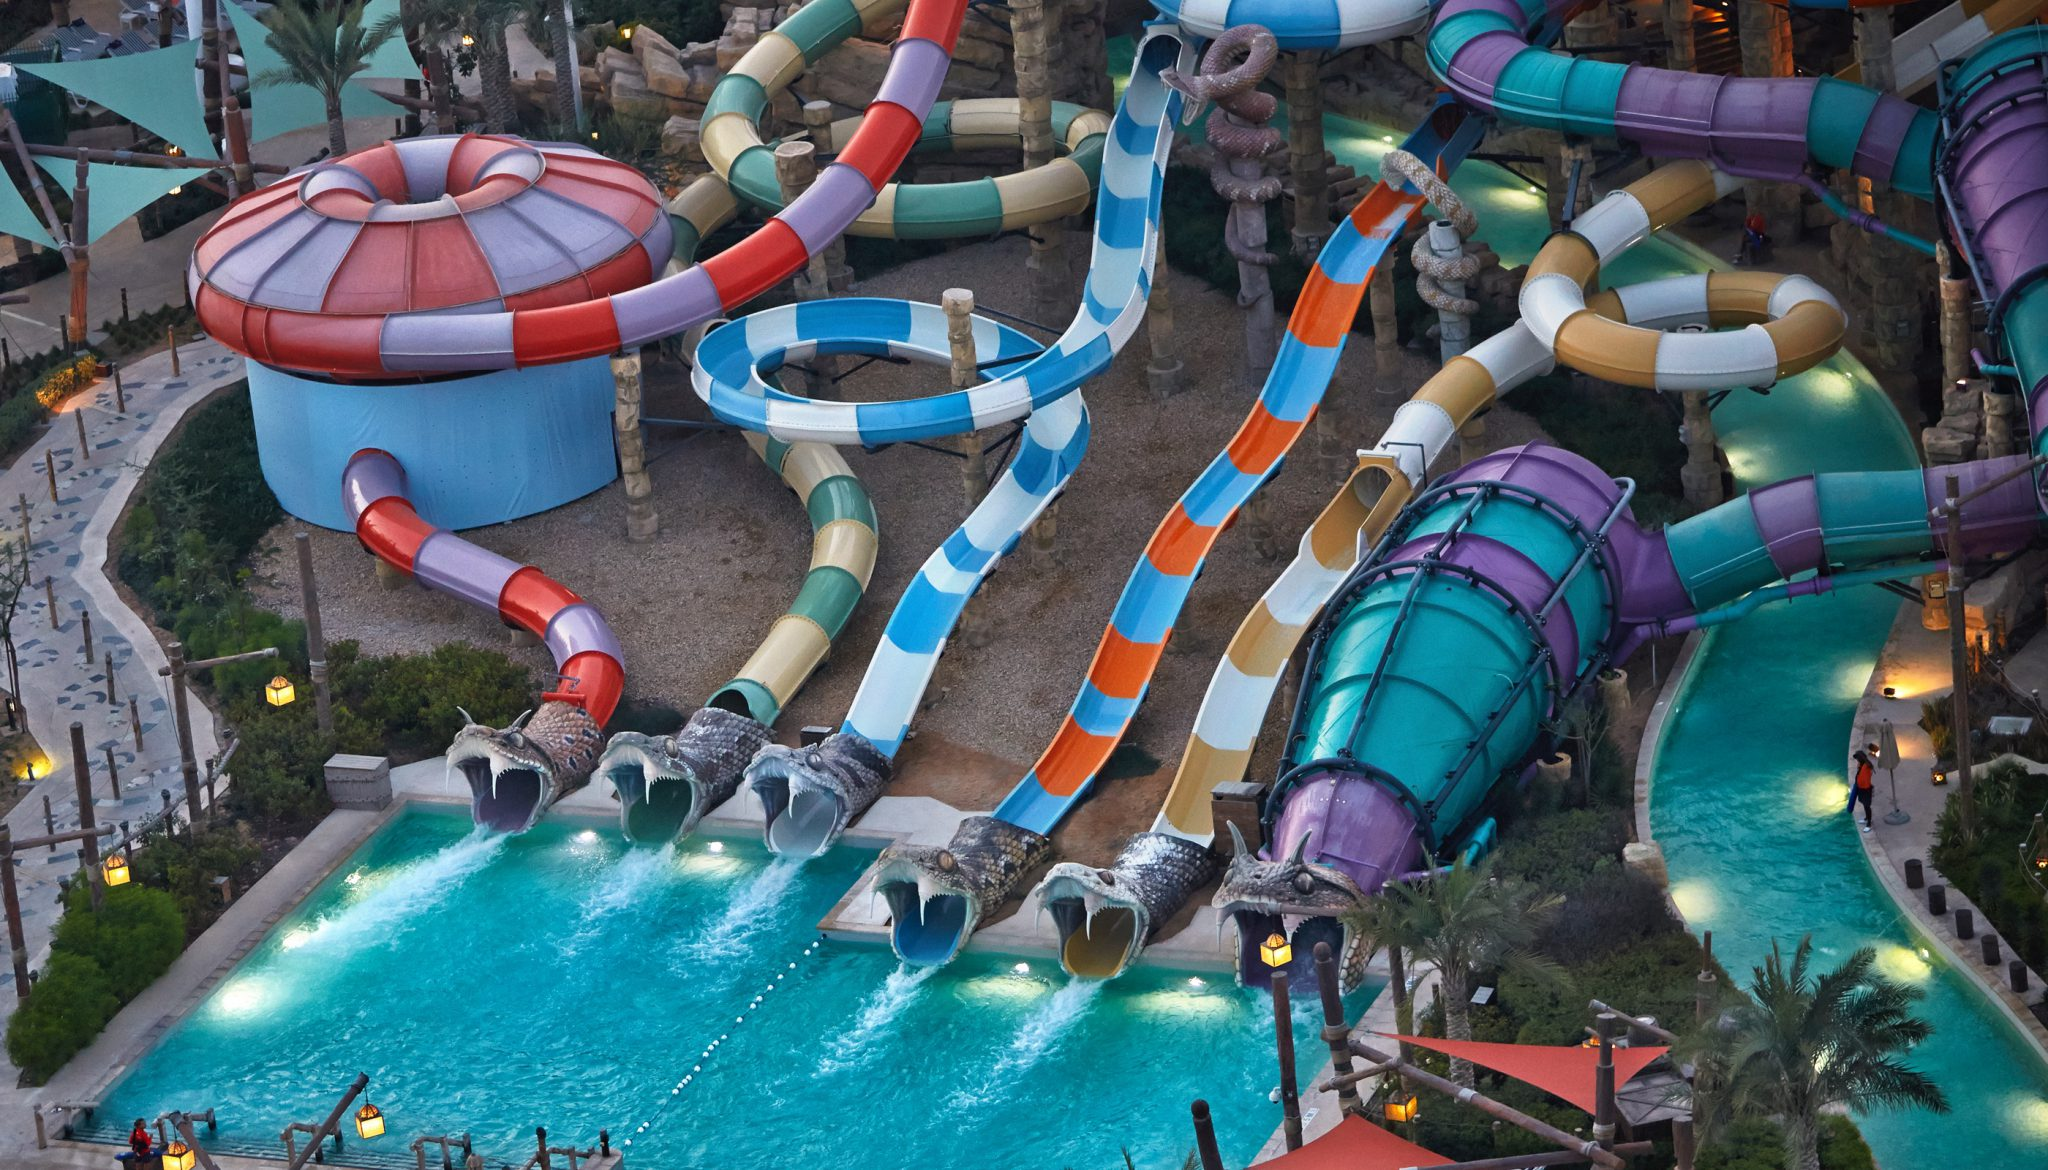 Slither's Slides Yas Waterworld